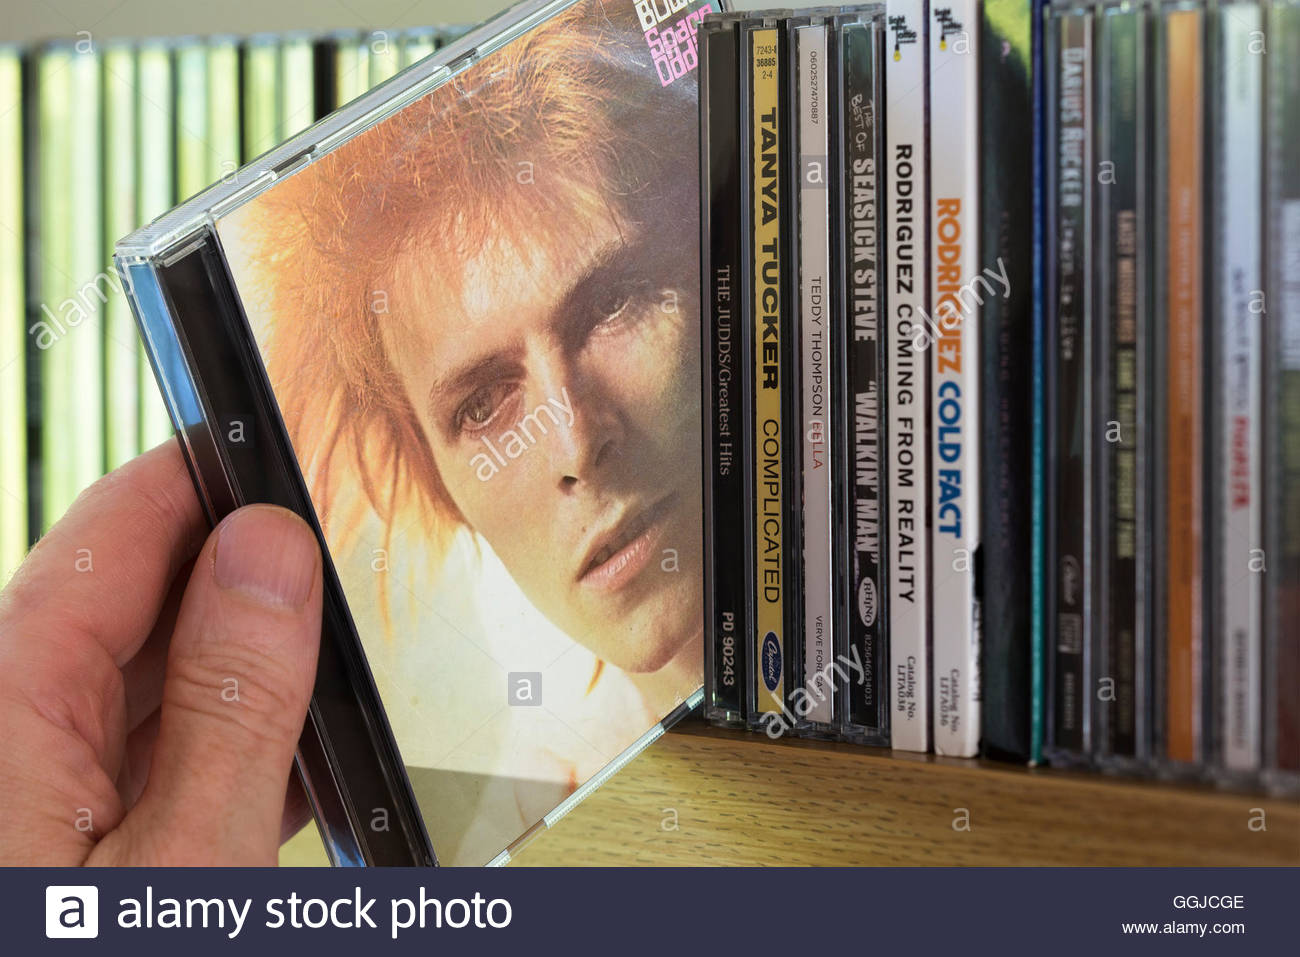 Space Oddity, 1969 David Bowie CD being chosen from a shelf of other CD's - Stock Image